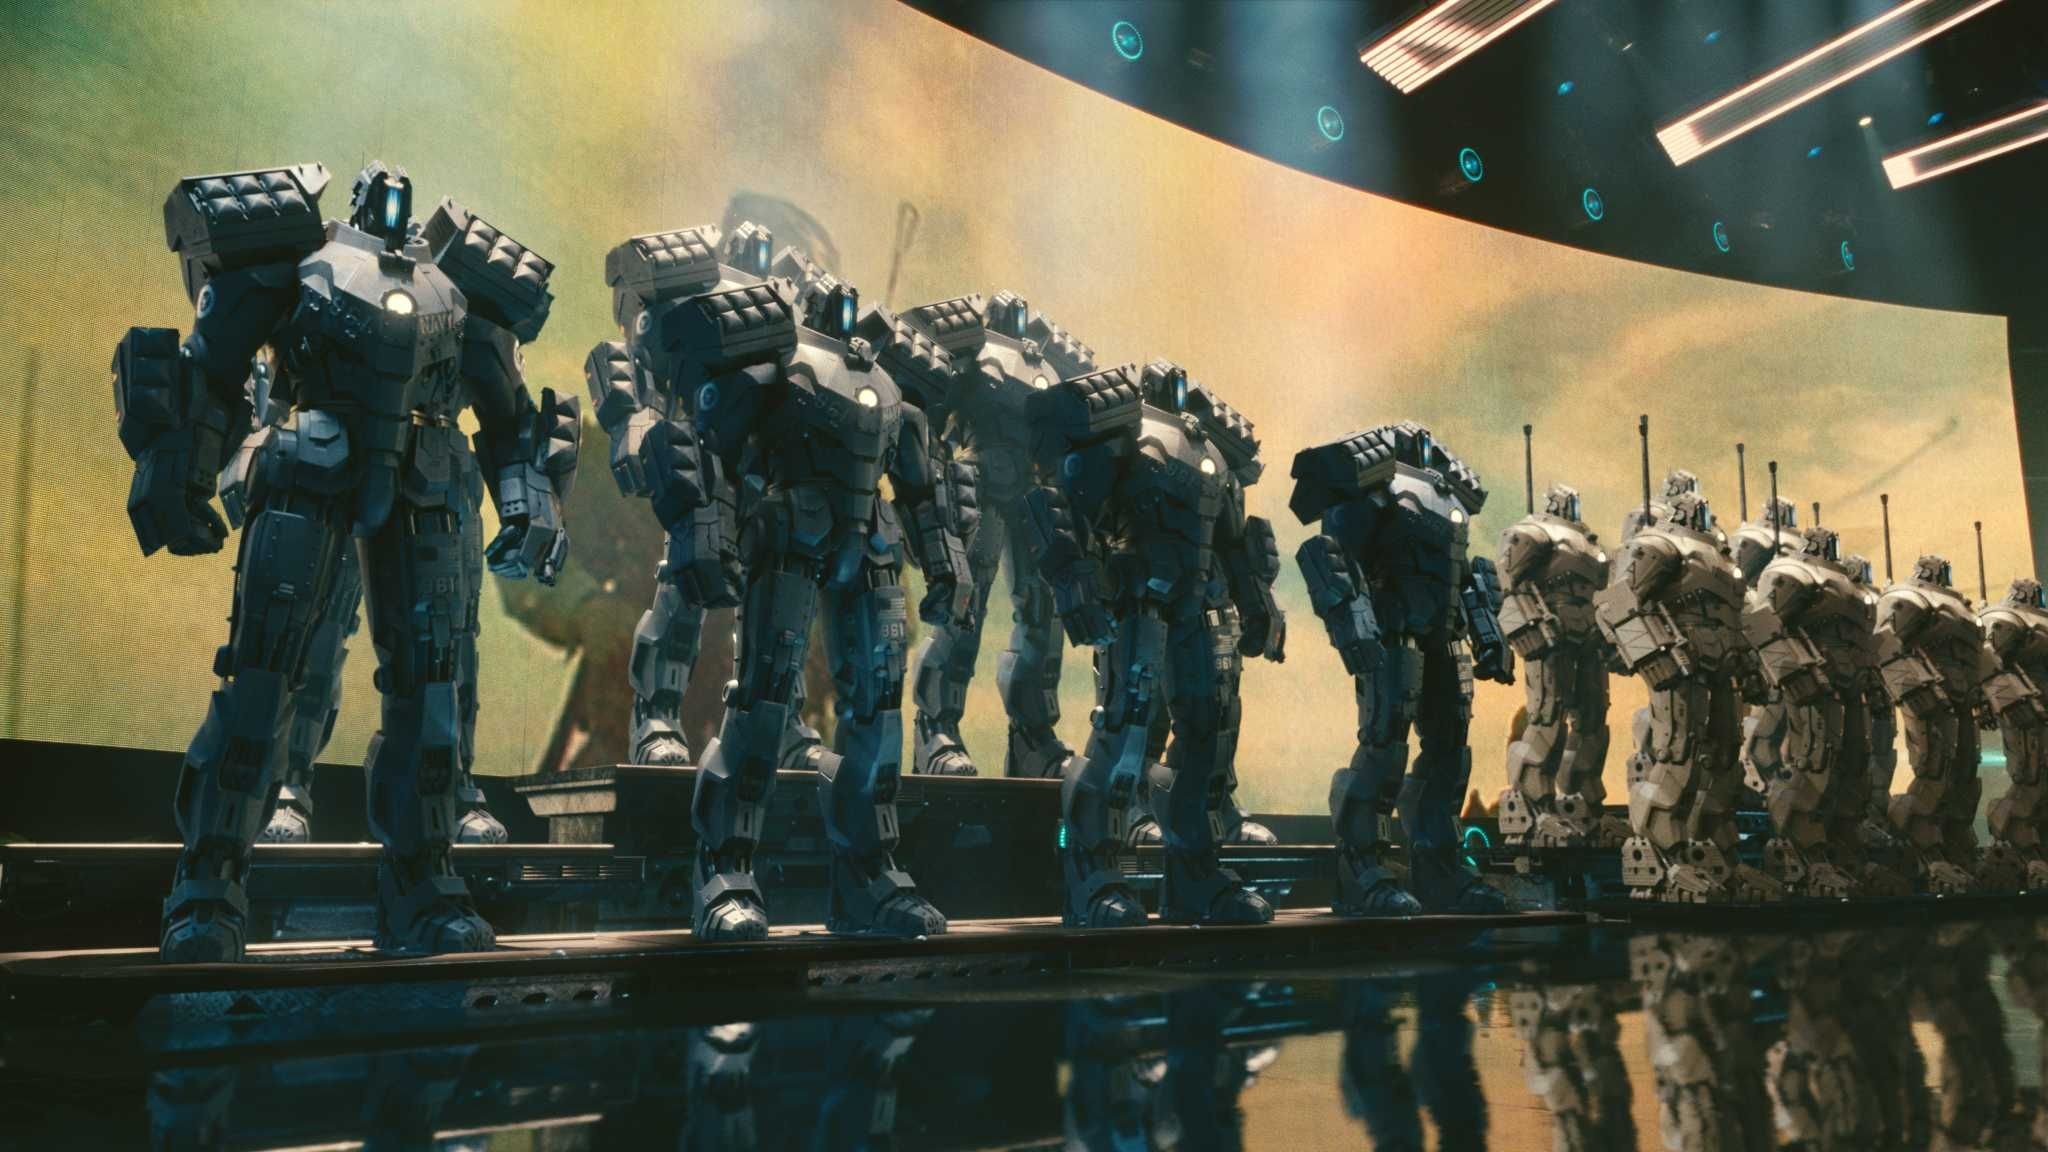 Killer Robots Army That is Killer Robots That